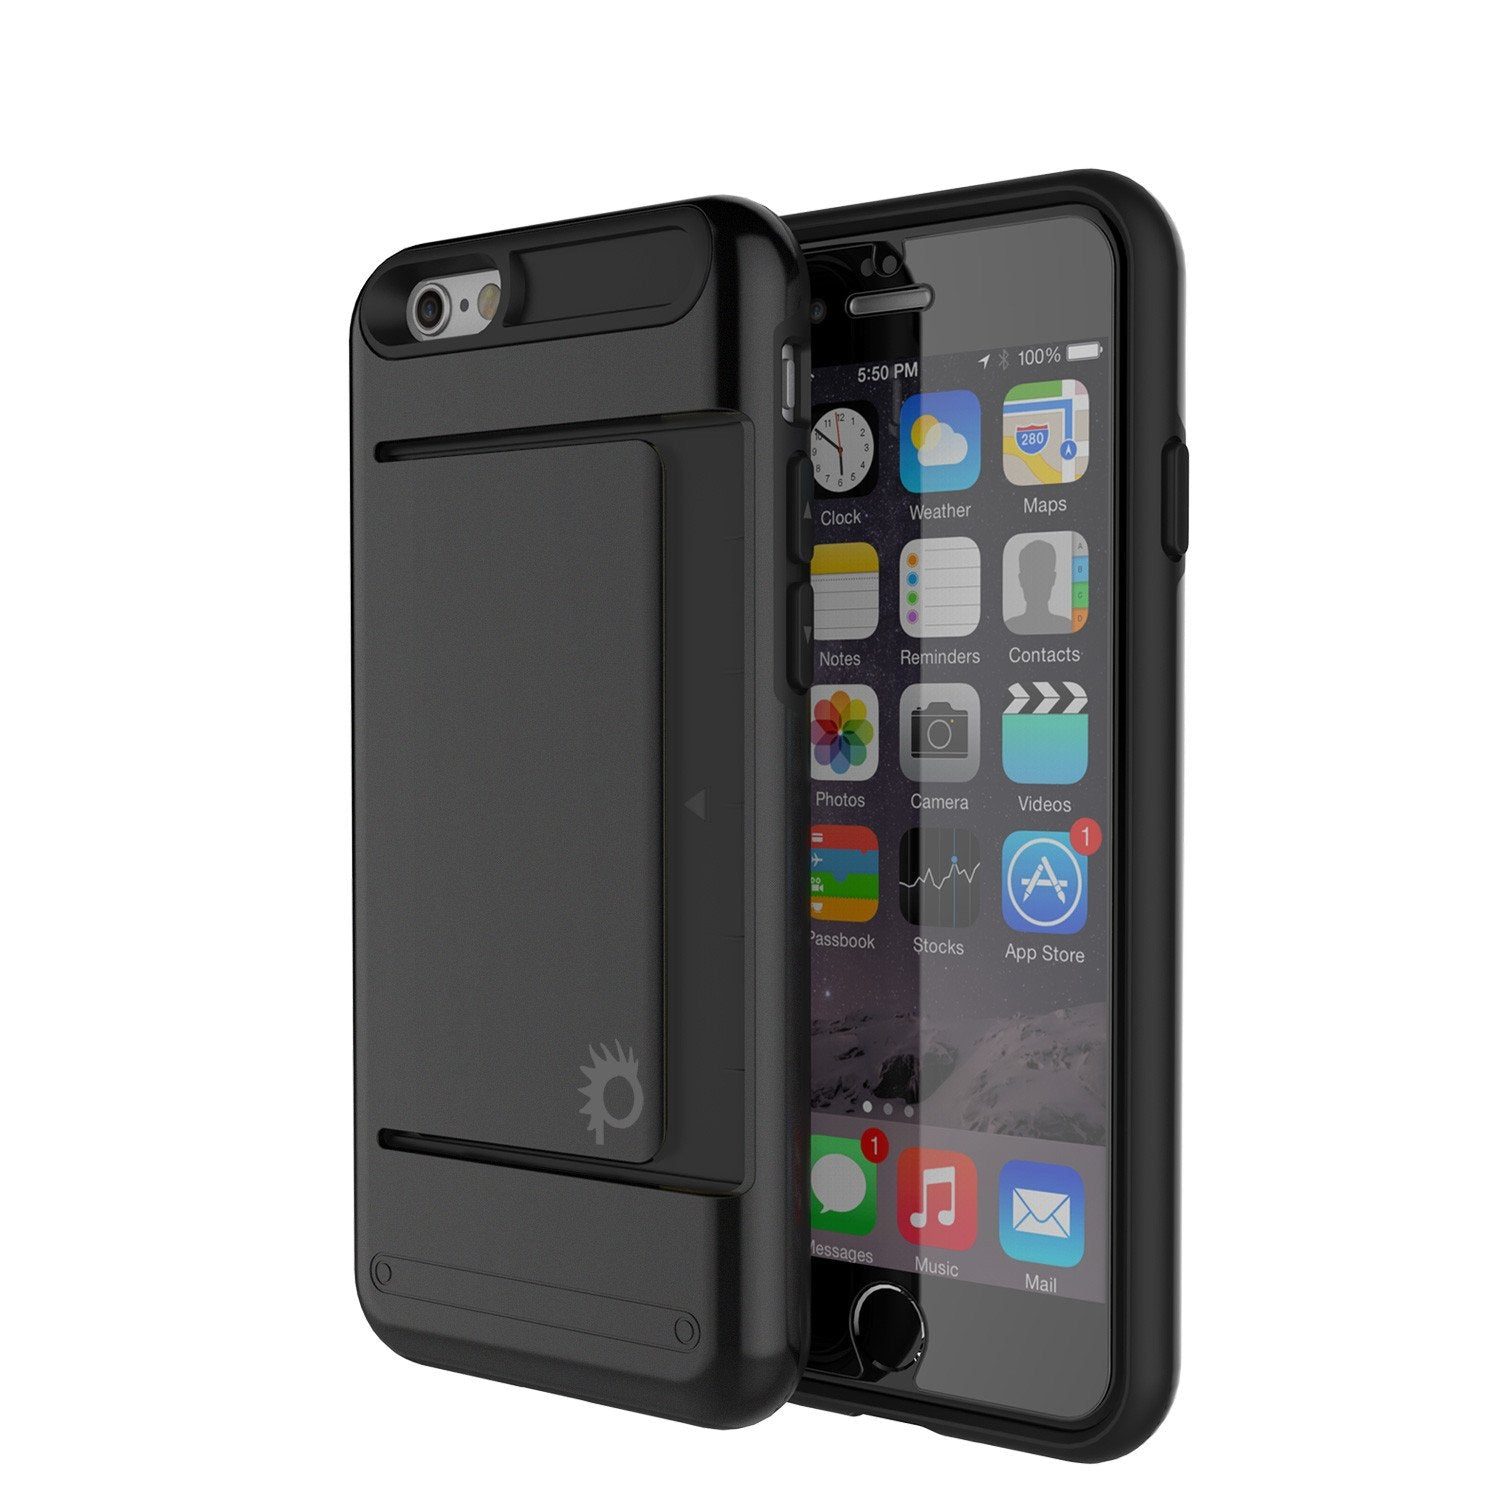 iPhone 6/6s Case PunkCase CLUTCH Black Series Slim Armor Soft Cover Case w/ Tempered Glass